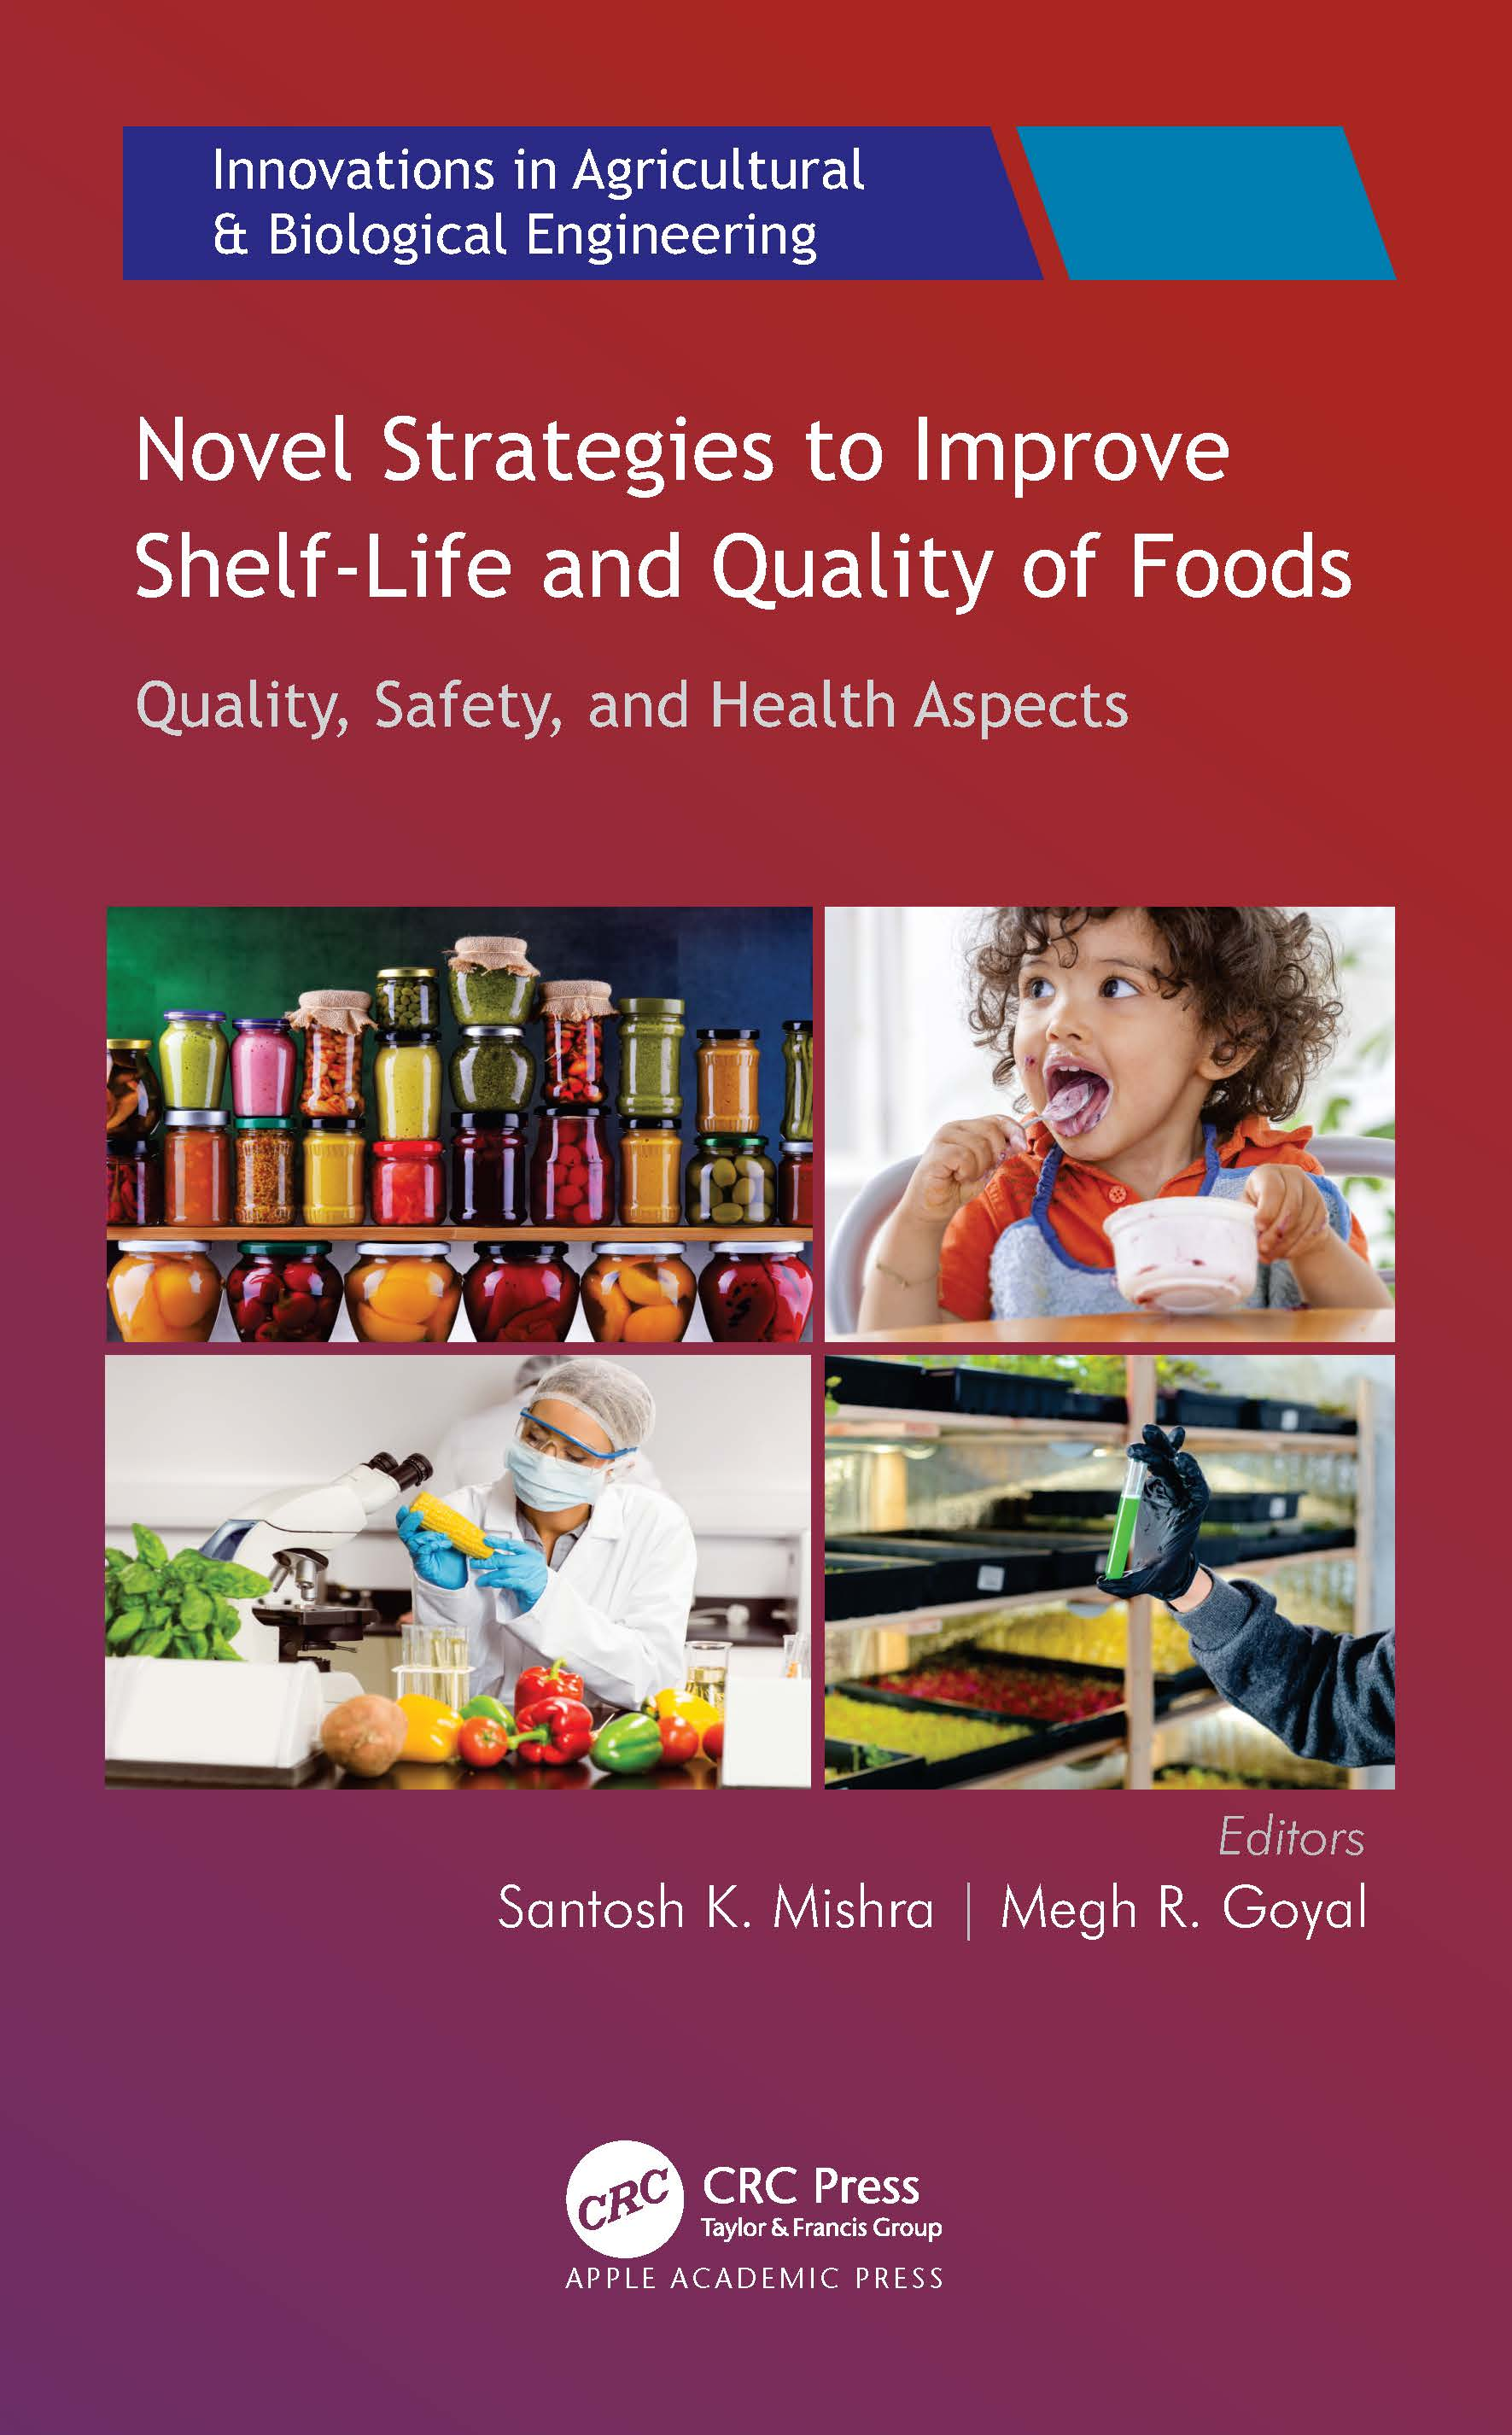 Novel Strategies to Improve Shelf-Life and Quality of Foods book cover